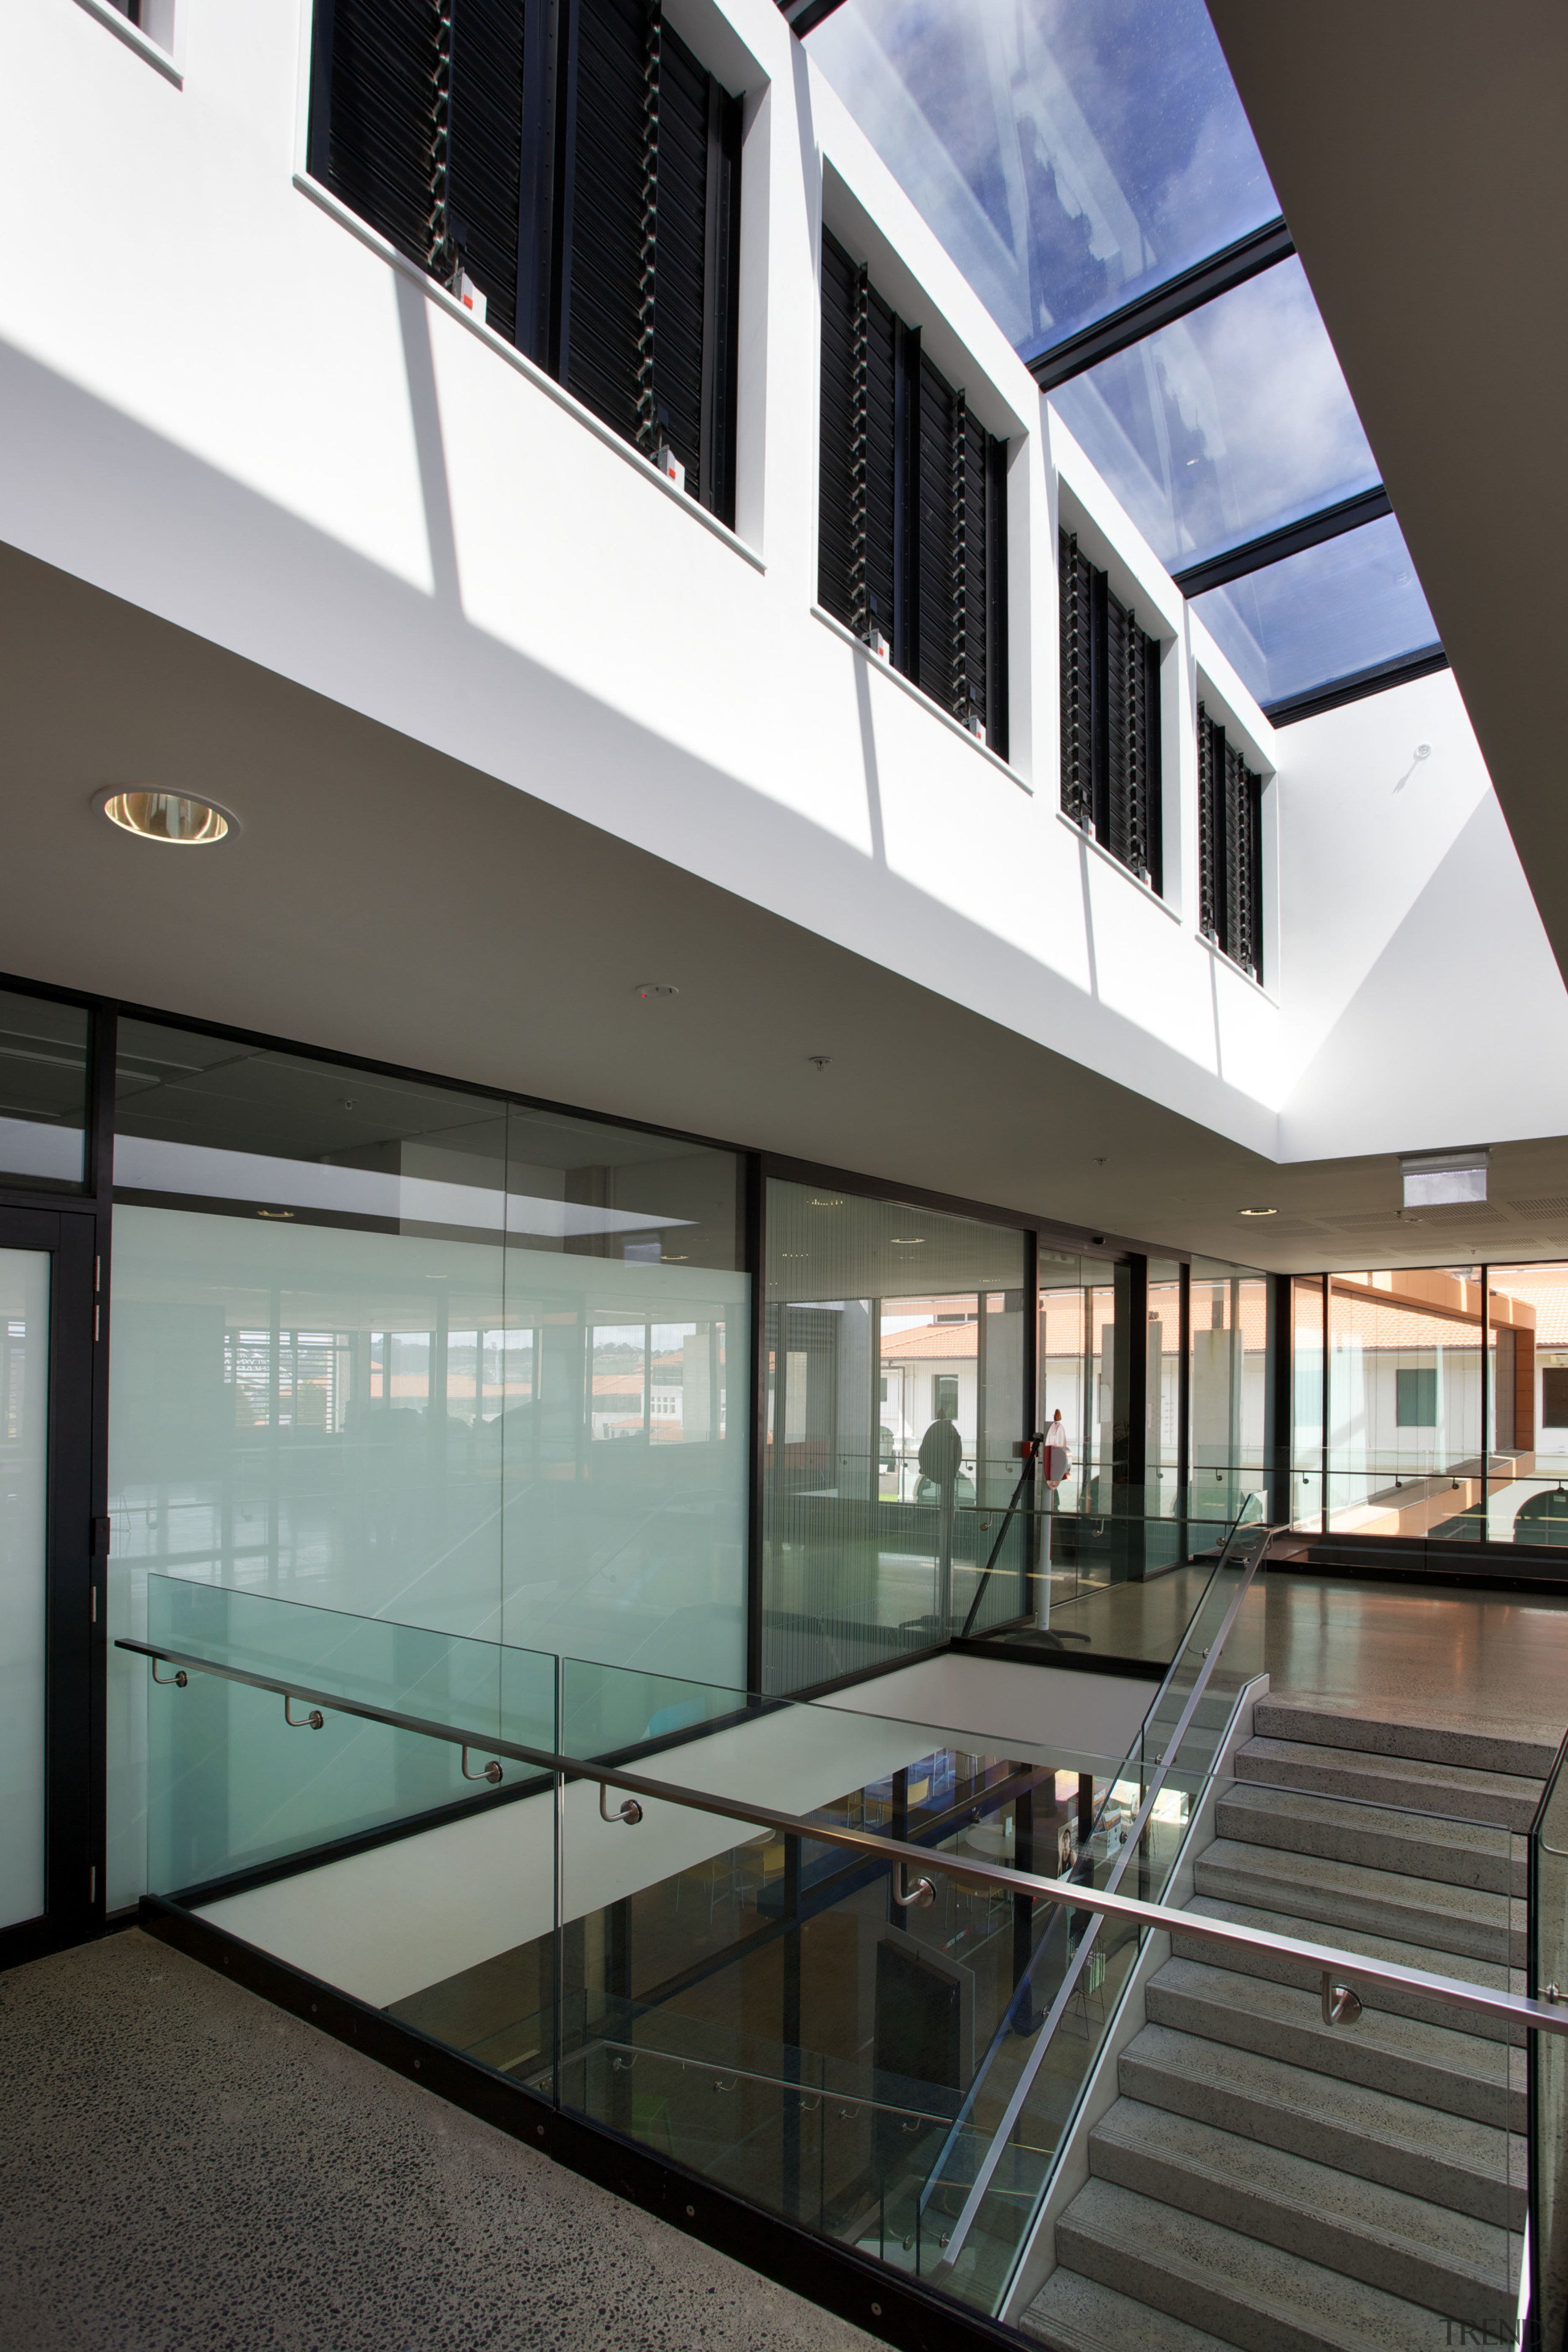 The clean-lined architecure of the facility is matched apartment, architecture, building, condominium, daylighting, glass, house, interior design, real estate, window, gray, black